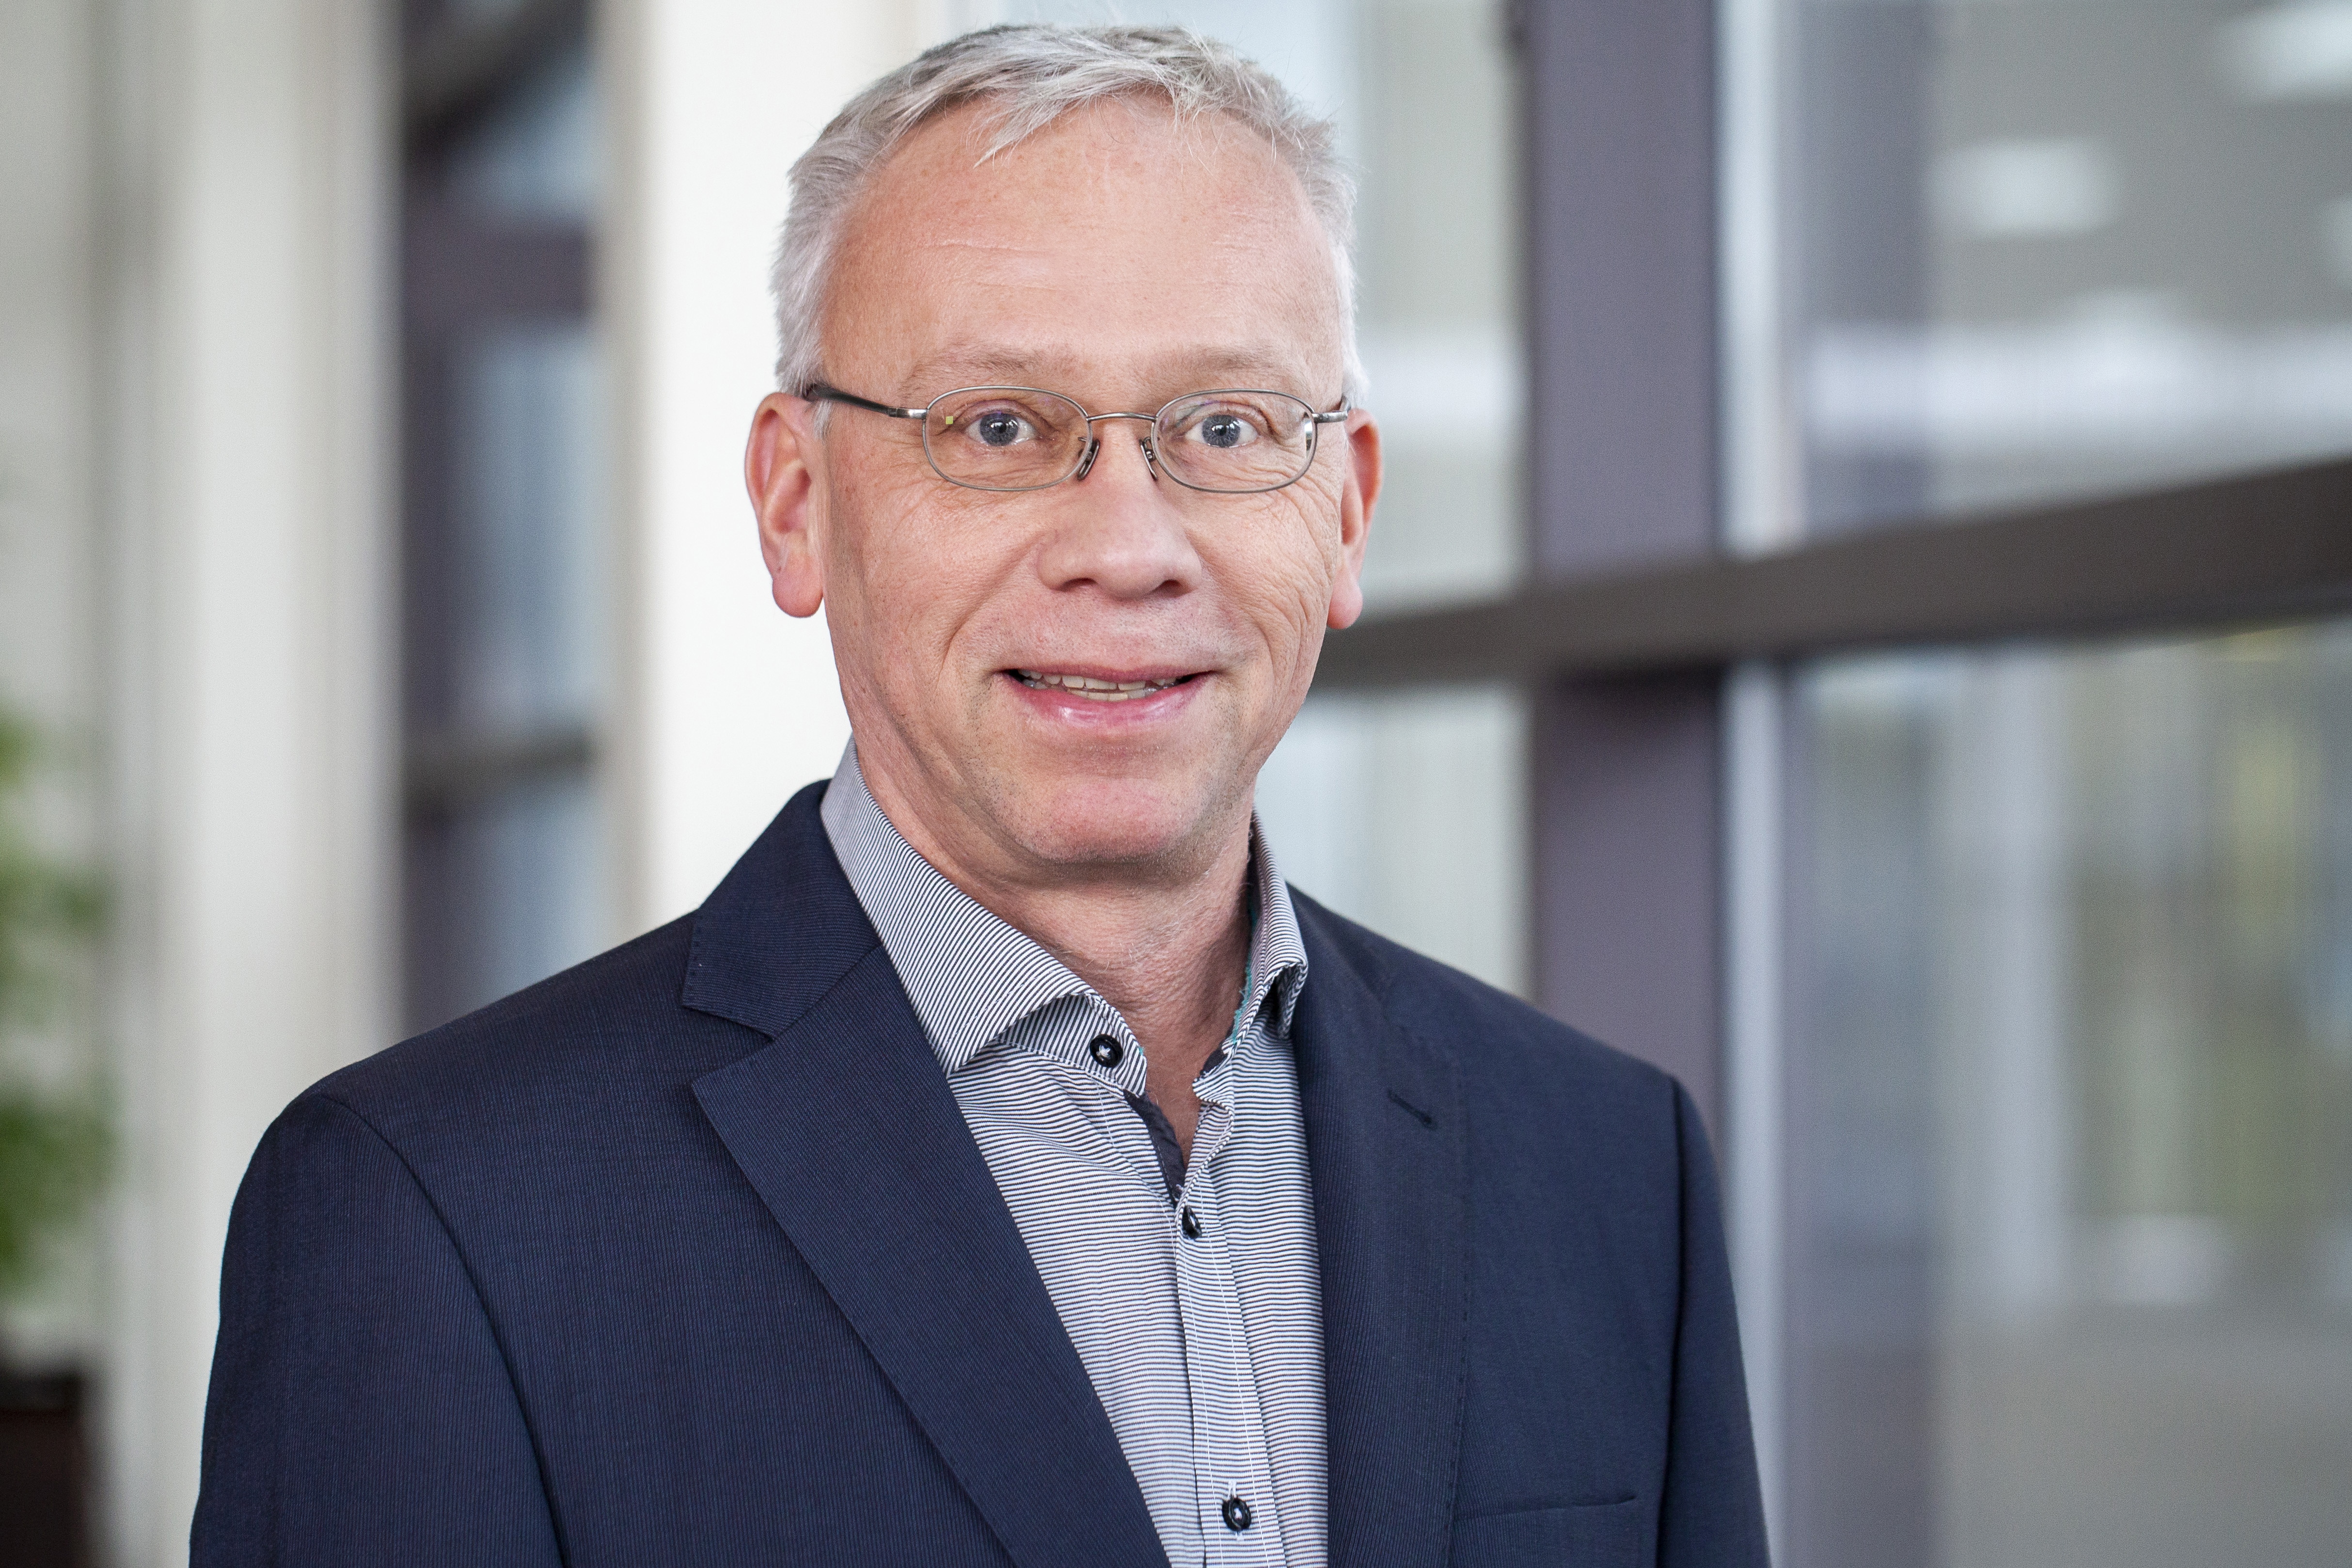 Dr. Michael Mikulla is head of the business unit »Power Electronics« at Fraunhofer IAF